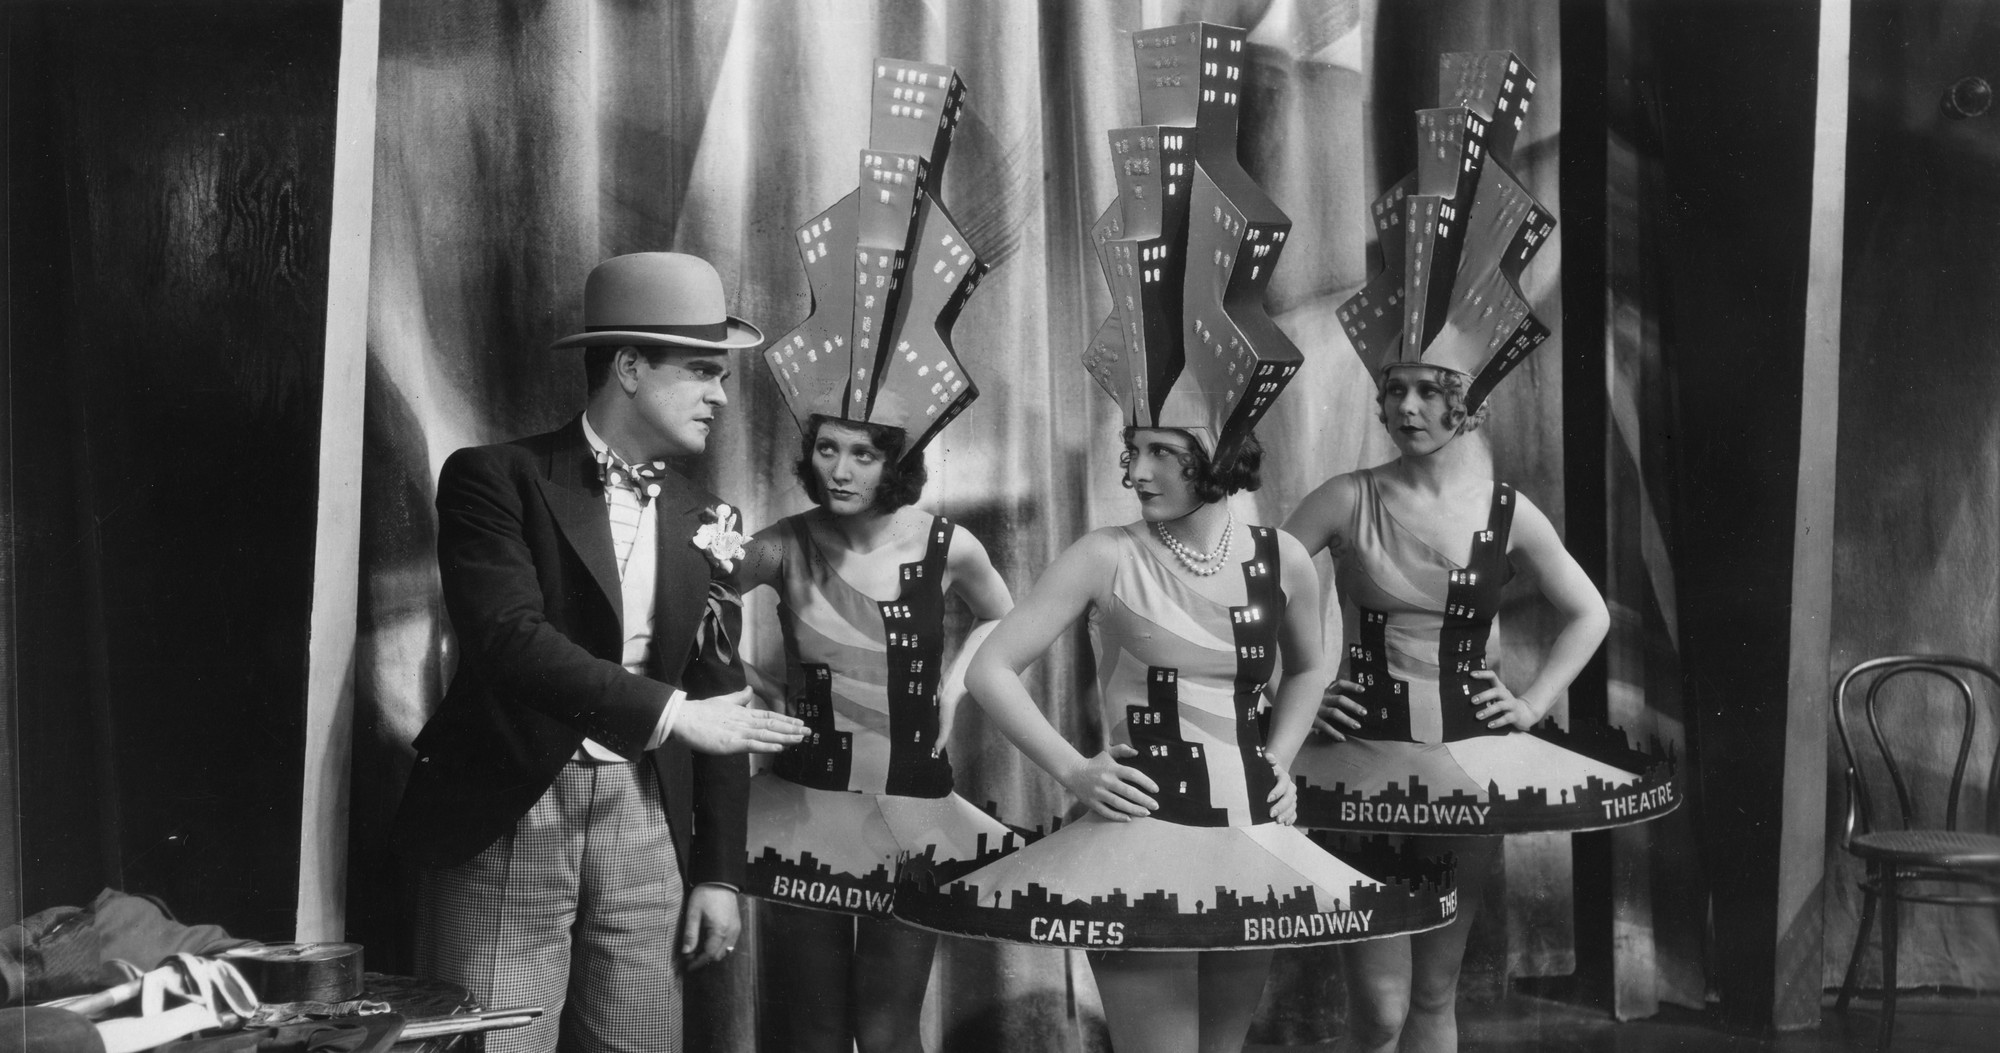 Broadway. 1929. USA. Directed by Pal Fejos